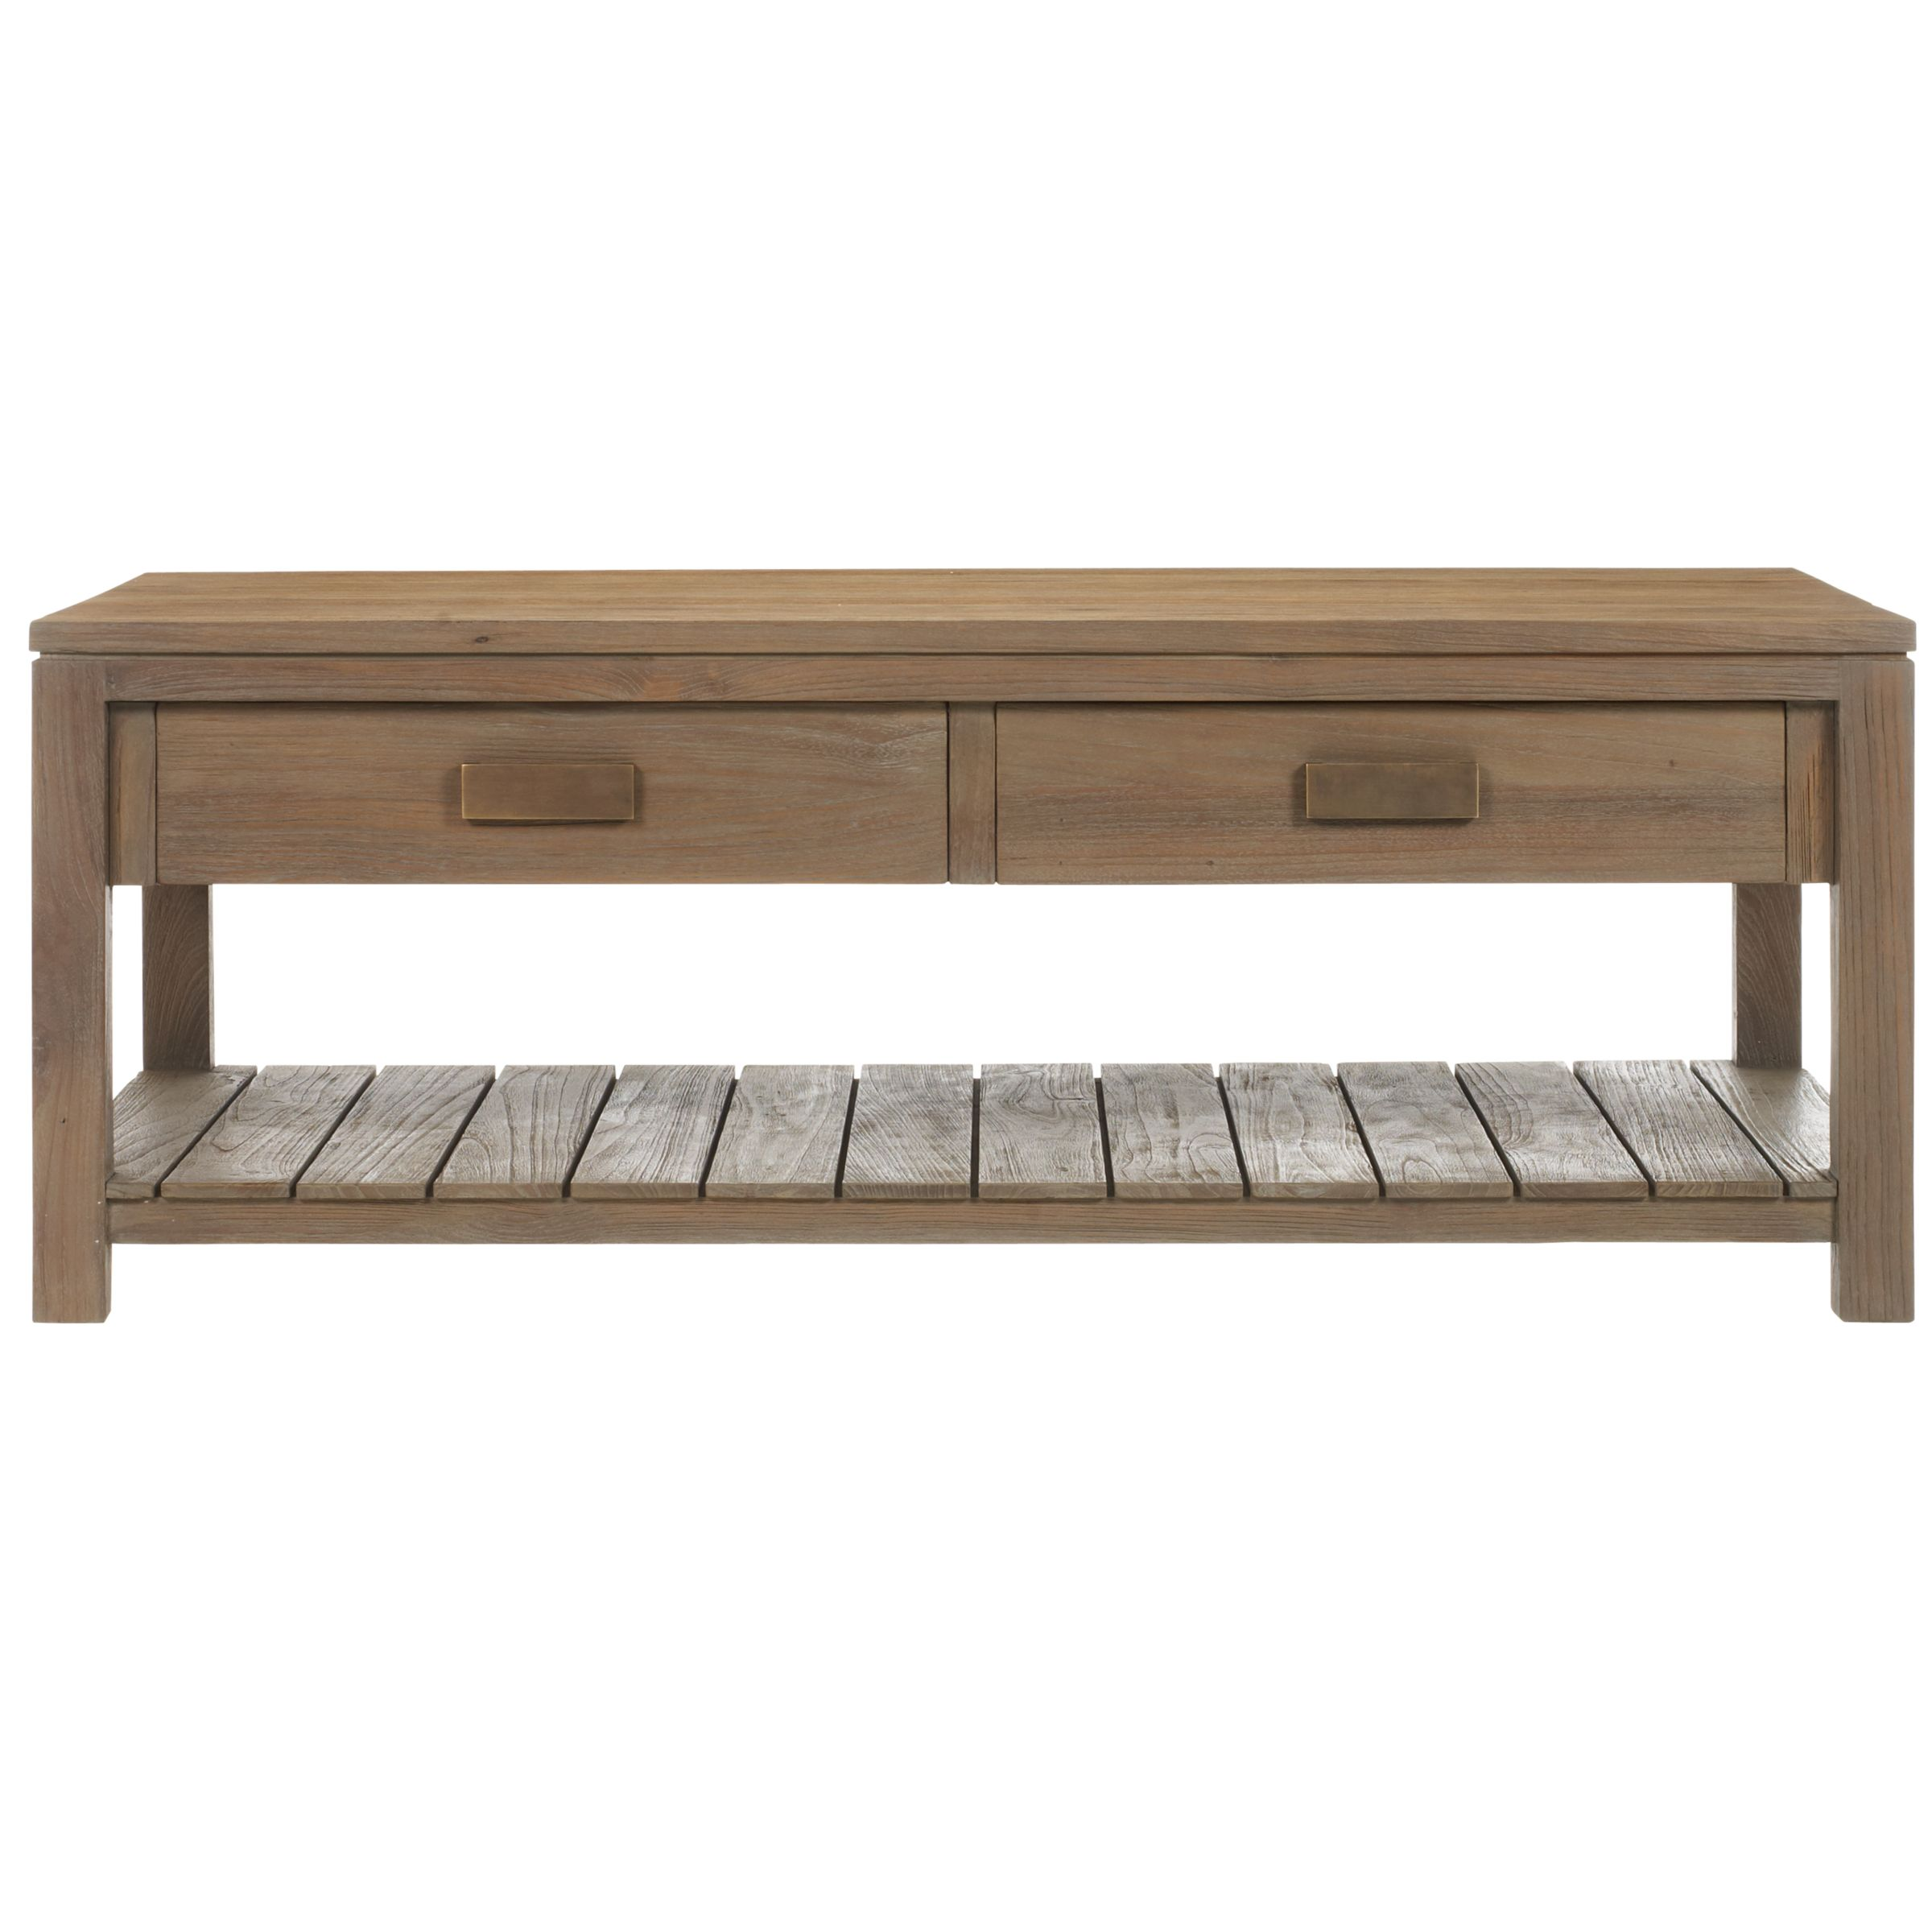 John lewis coffee tables for Coffee tables john lewis